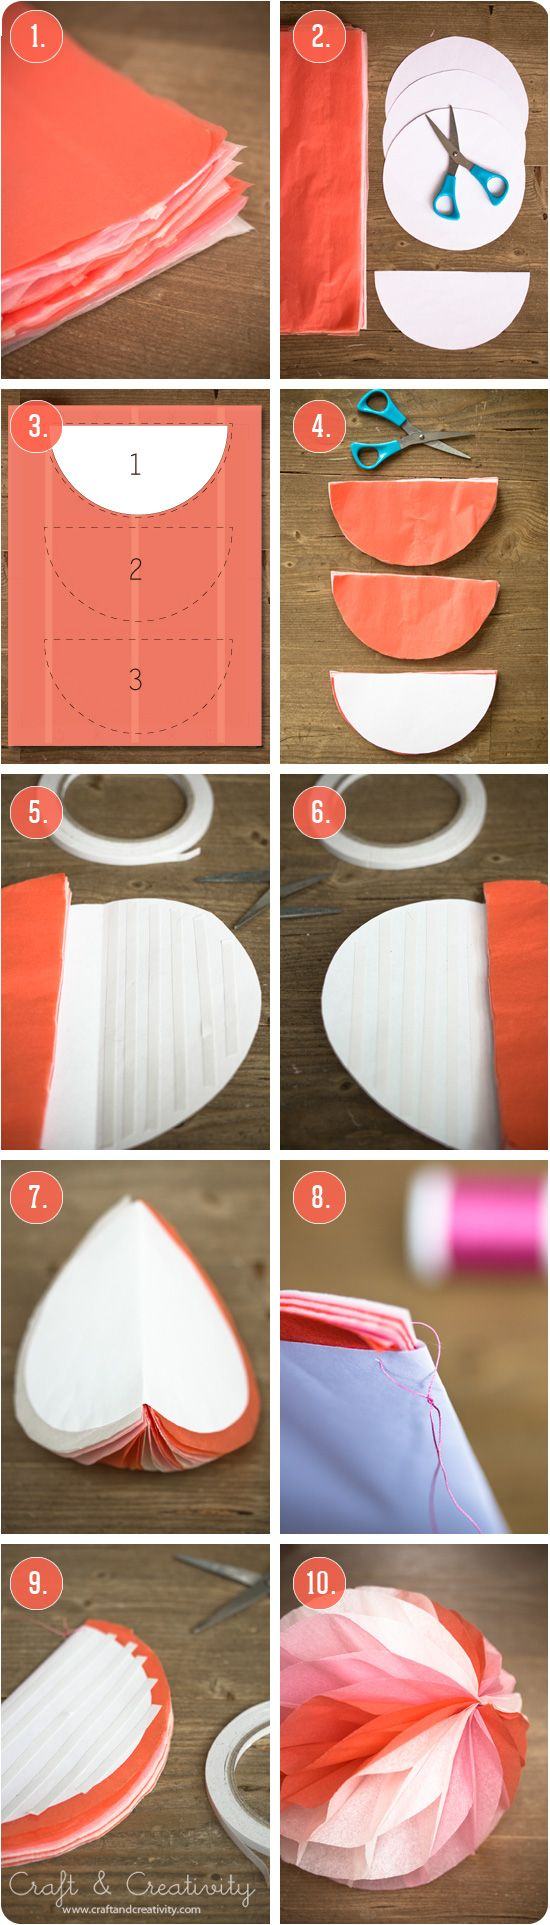 Tutorial how to make your own honeycomb paper party decorations tutorial how to make your own honeycomb paper party decorations dhlflorist Image collections